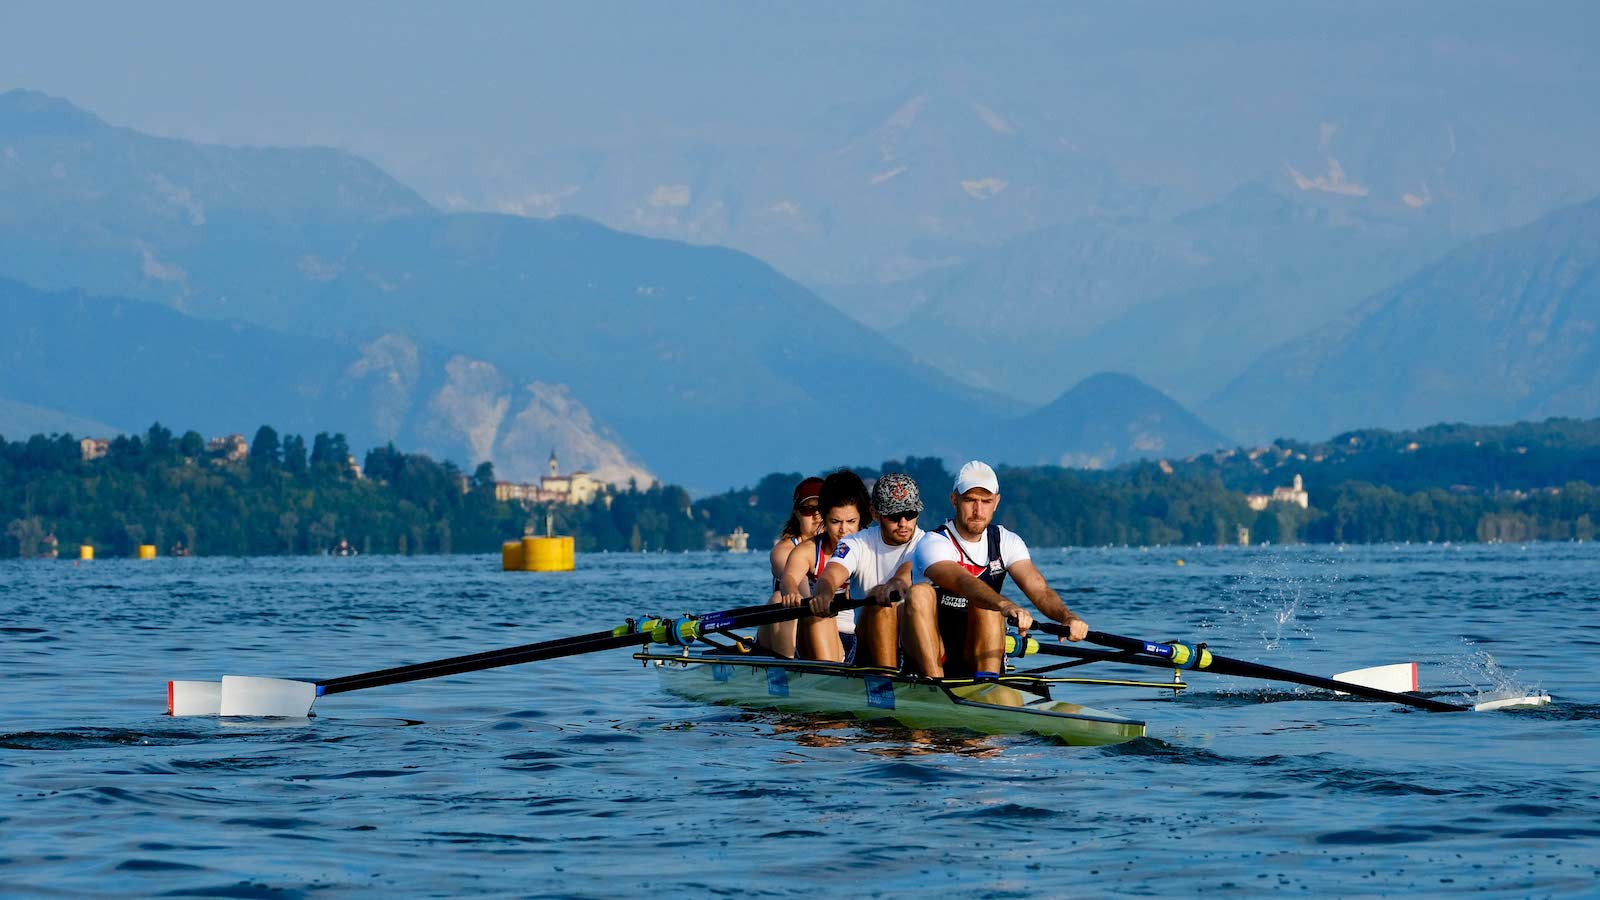 European rowing qualifier for Tokyo 2020 confirmed to take place in Varese in April